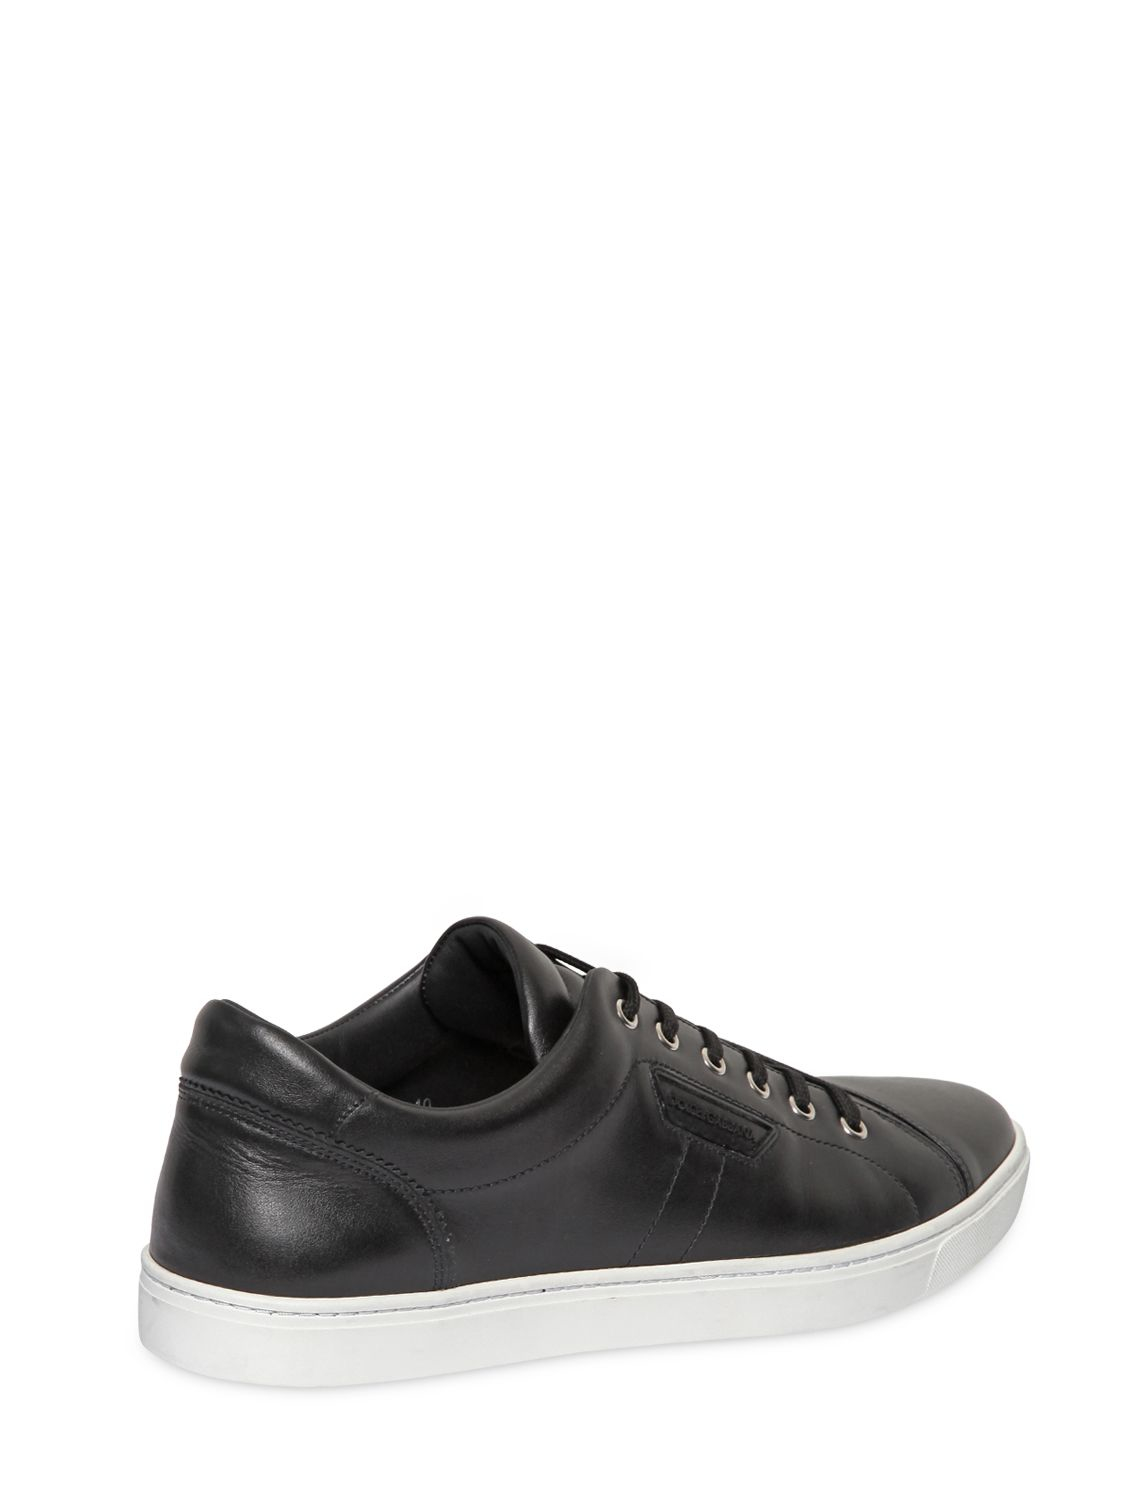 Dolce & GabbanaLONDON NAPPA LEATHER SNEAKERS TQ7xqSnl